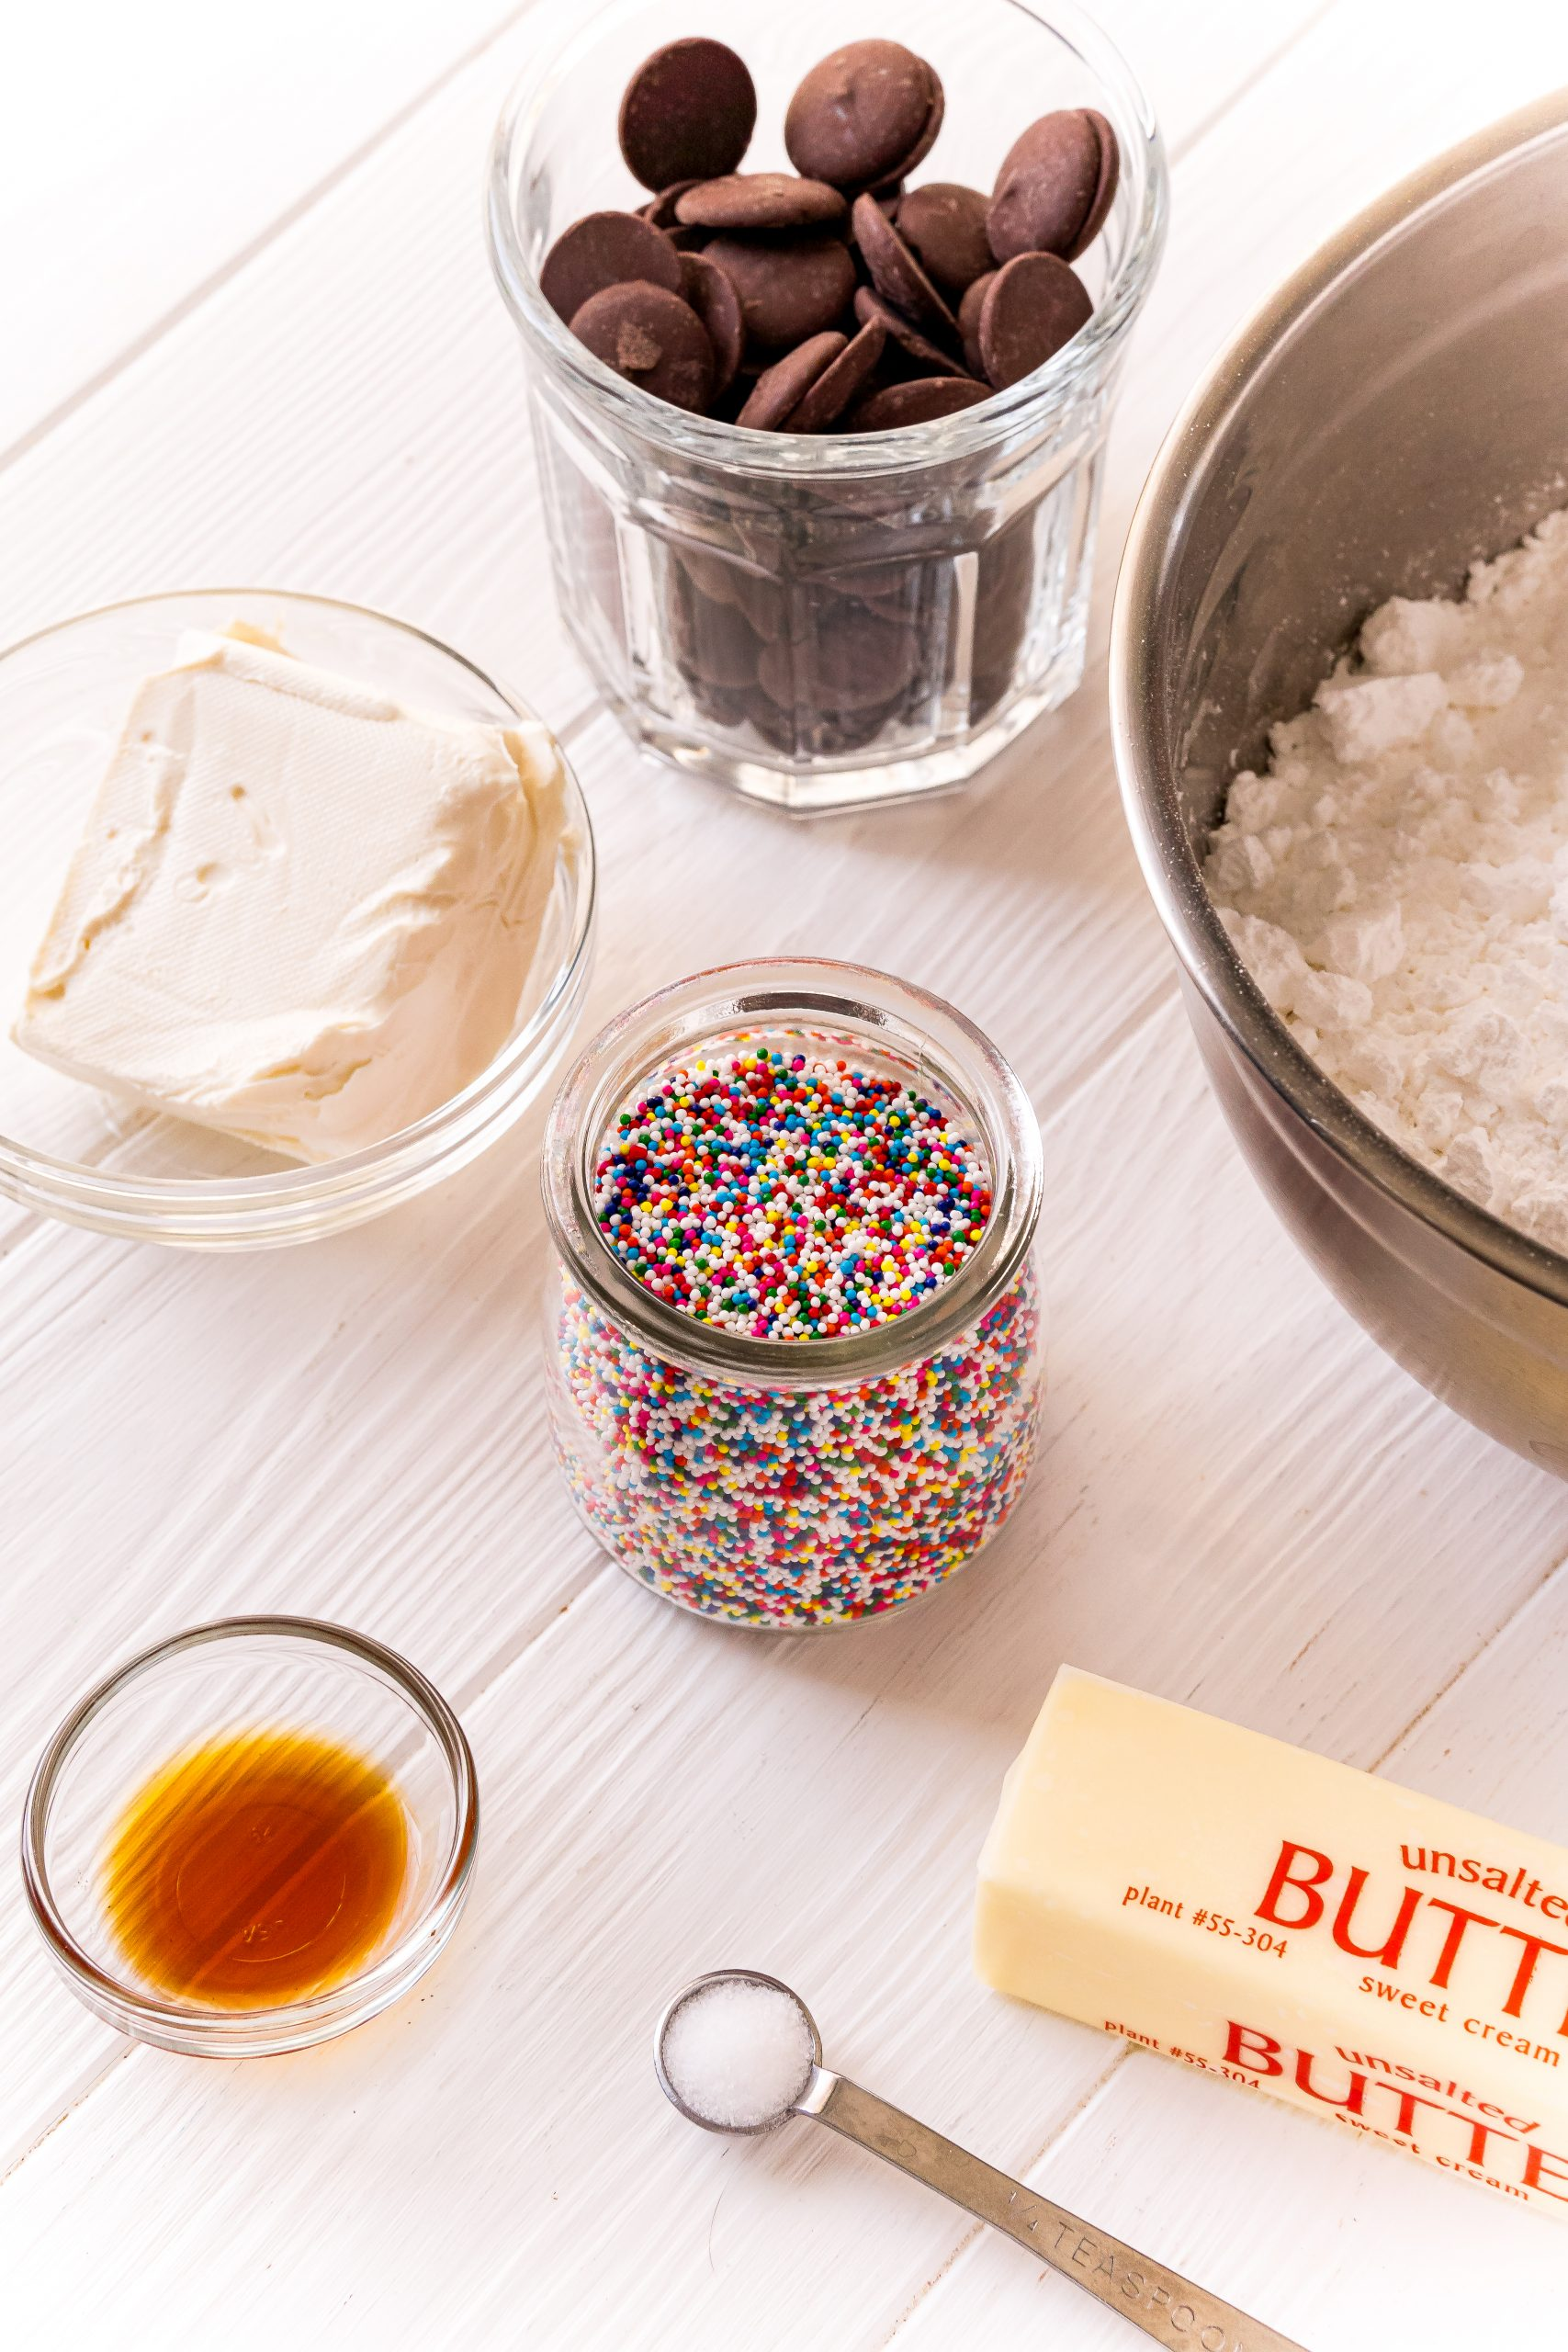 buttercream candy ingredients on a white table